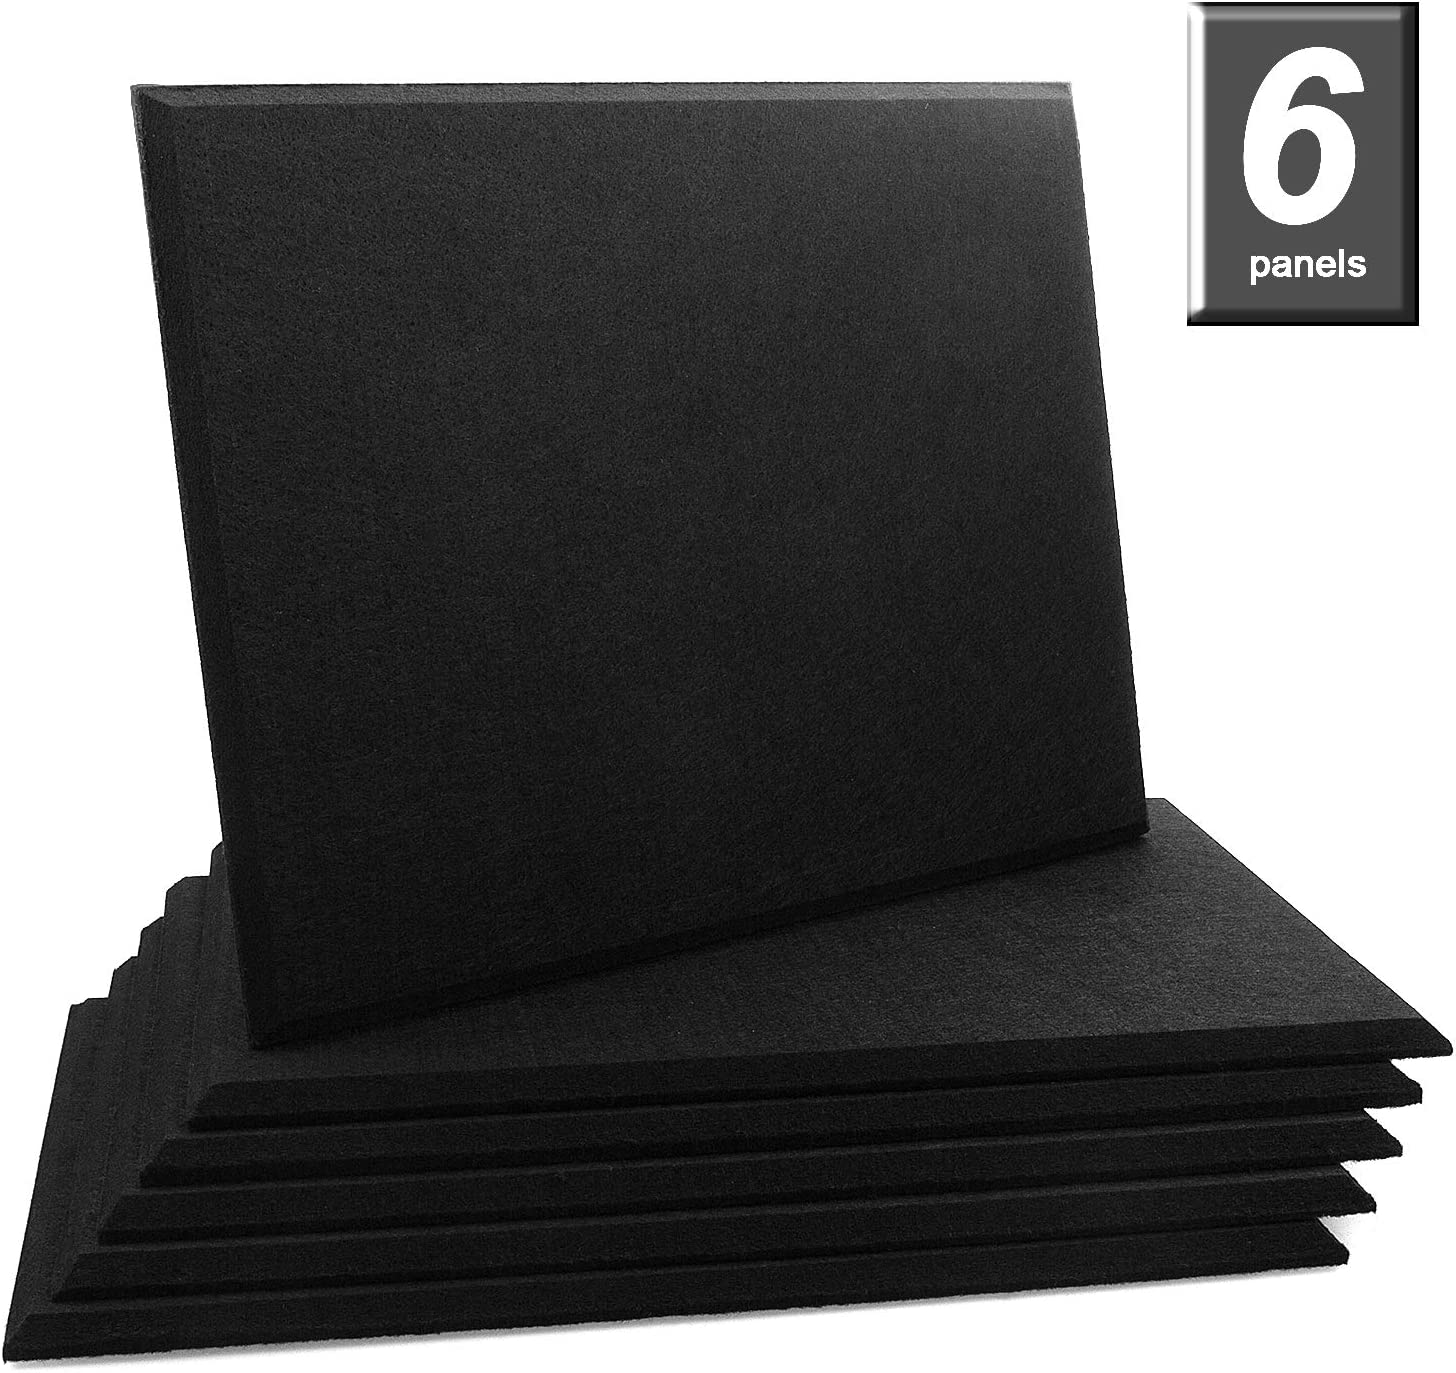 ADVcer 6 Pack Acoustic Panels Piano Room Home Theater 15.7x11.8x0.5 inch Polyester Fiber Bevled Edge Wall Sound Insulation Sound Proof Padding Absorbing Soundproofing Tiles for Recording Studio